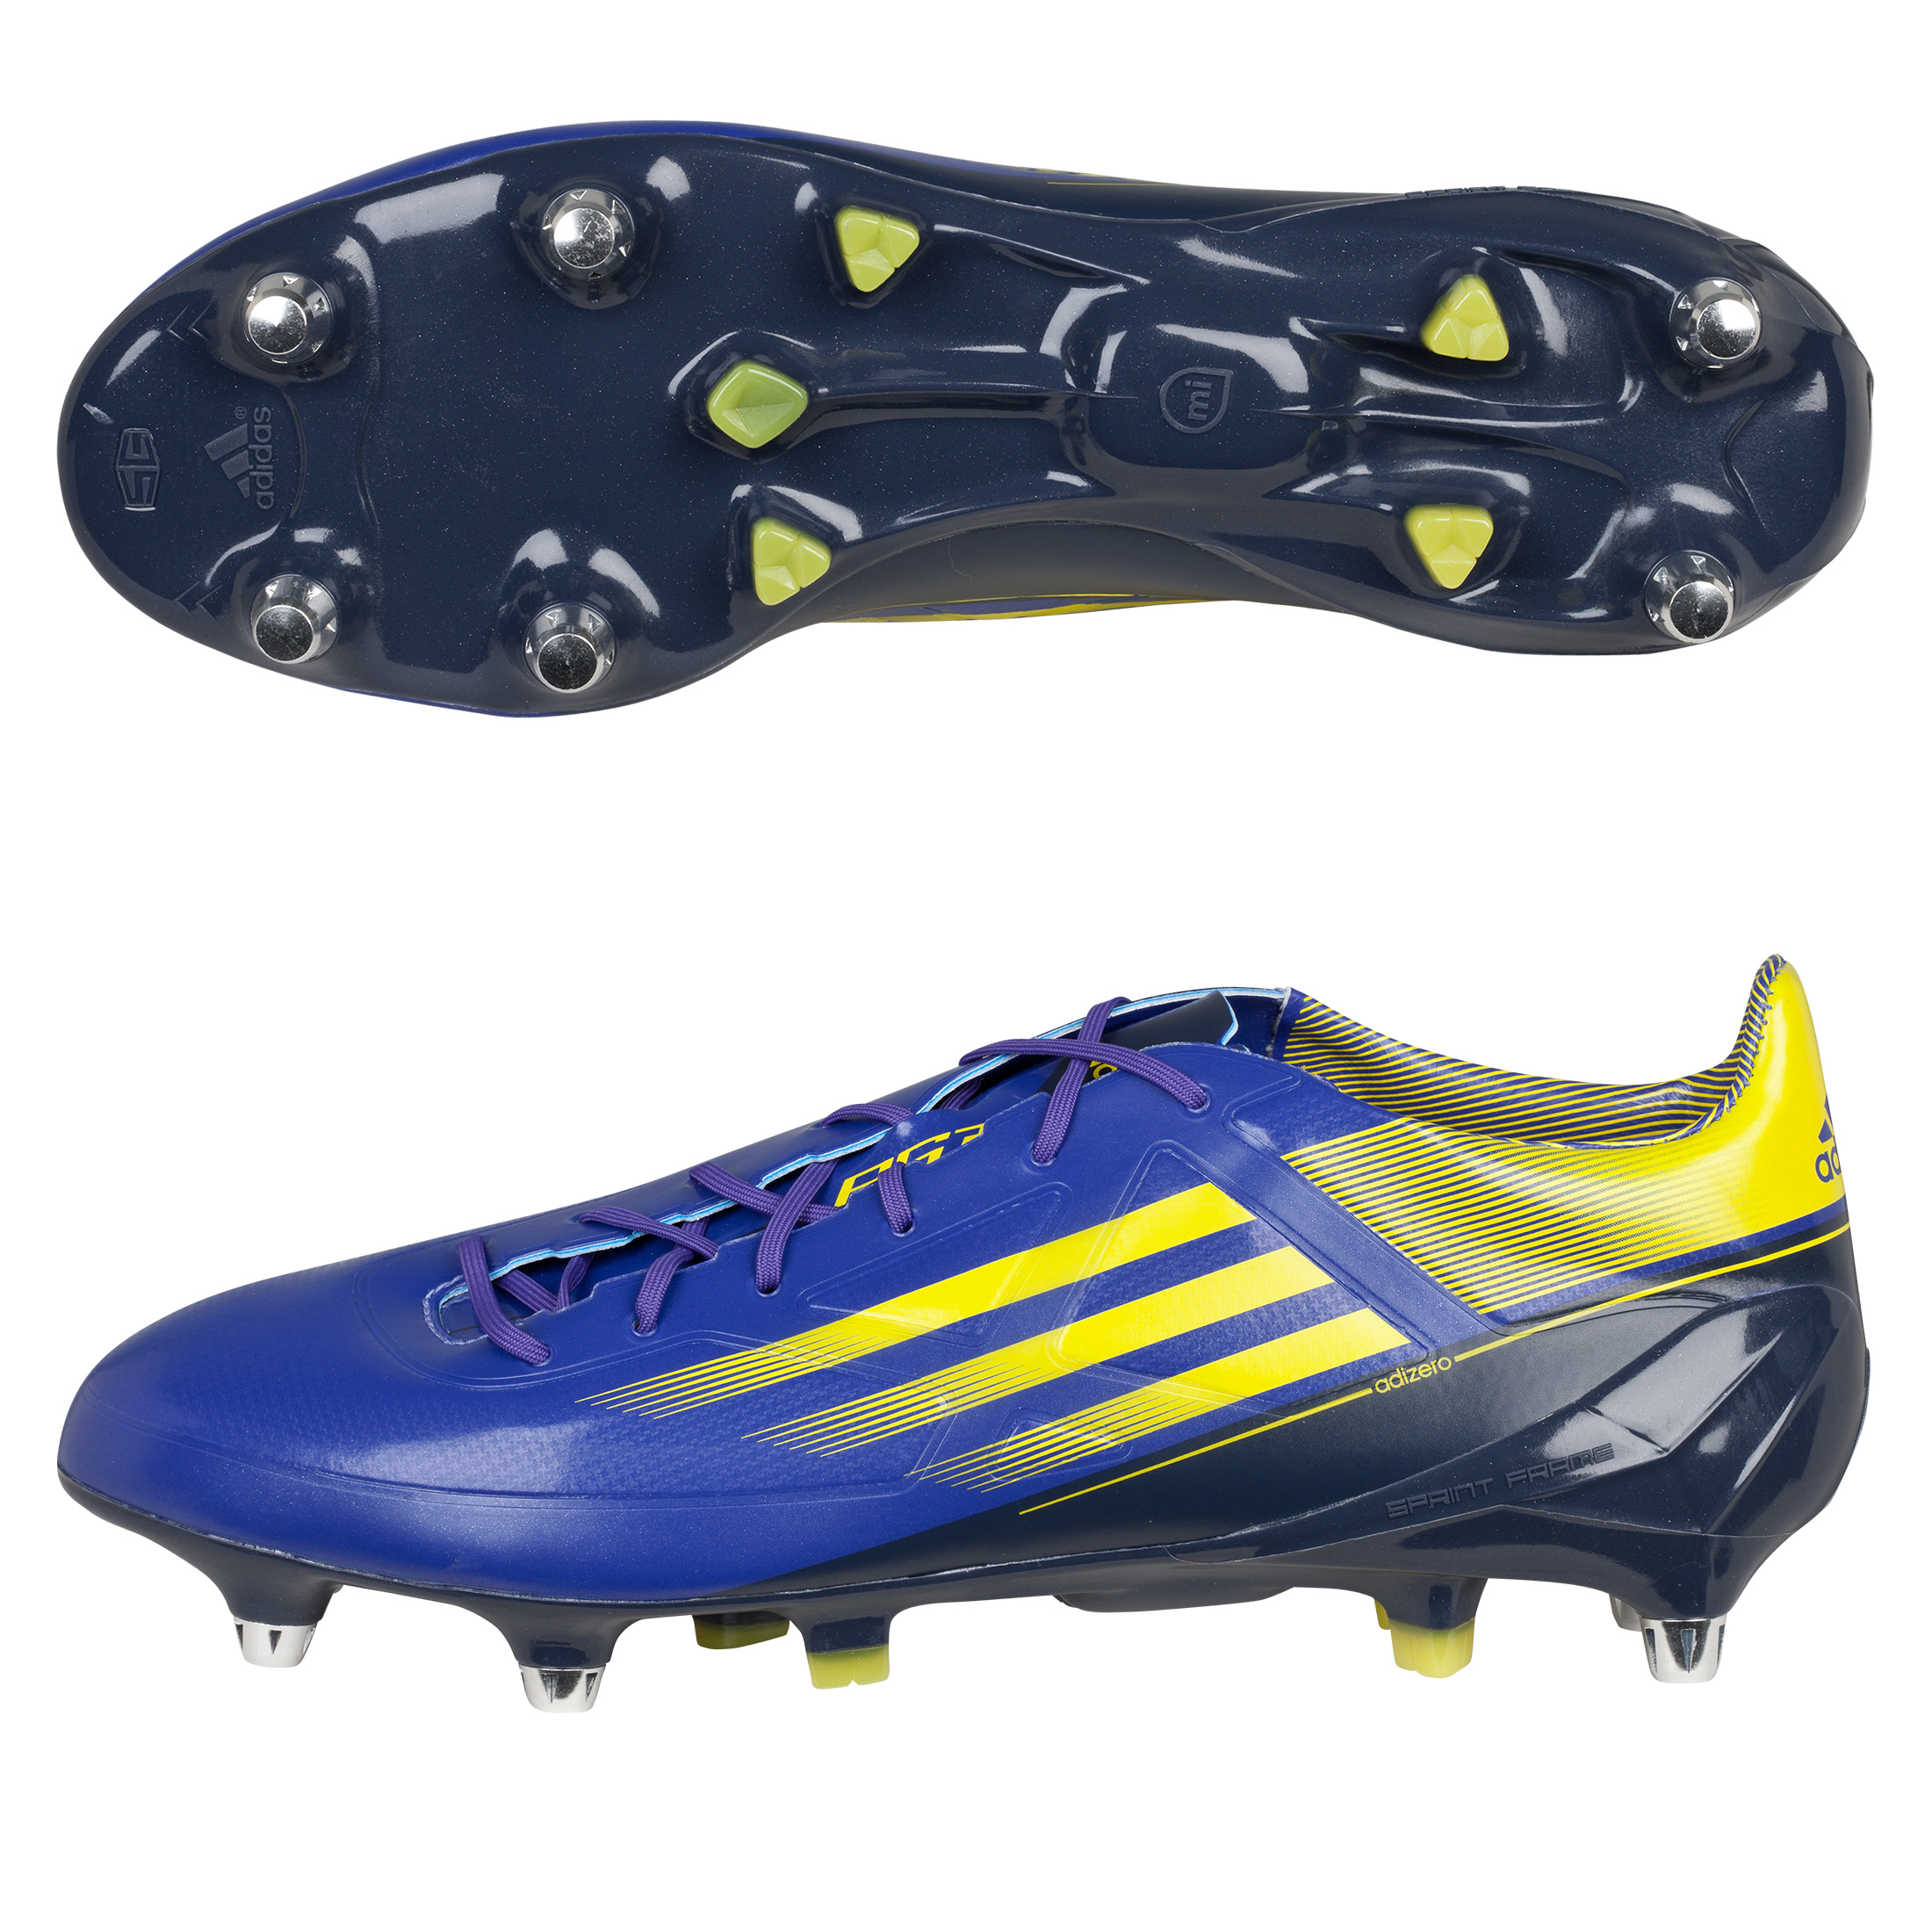 Adidas adiZero RS7 Pro XTRX III Soft Ground Rugby Boots - Blaze Blue Met/Vivid Yellow/Urban Sky